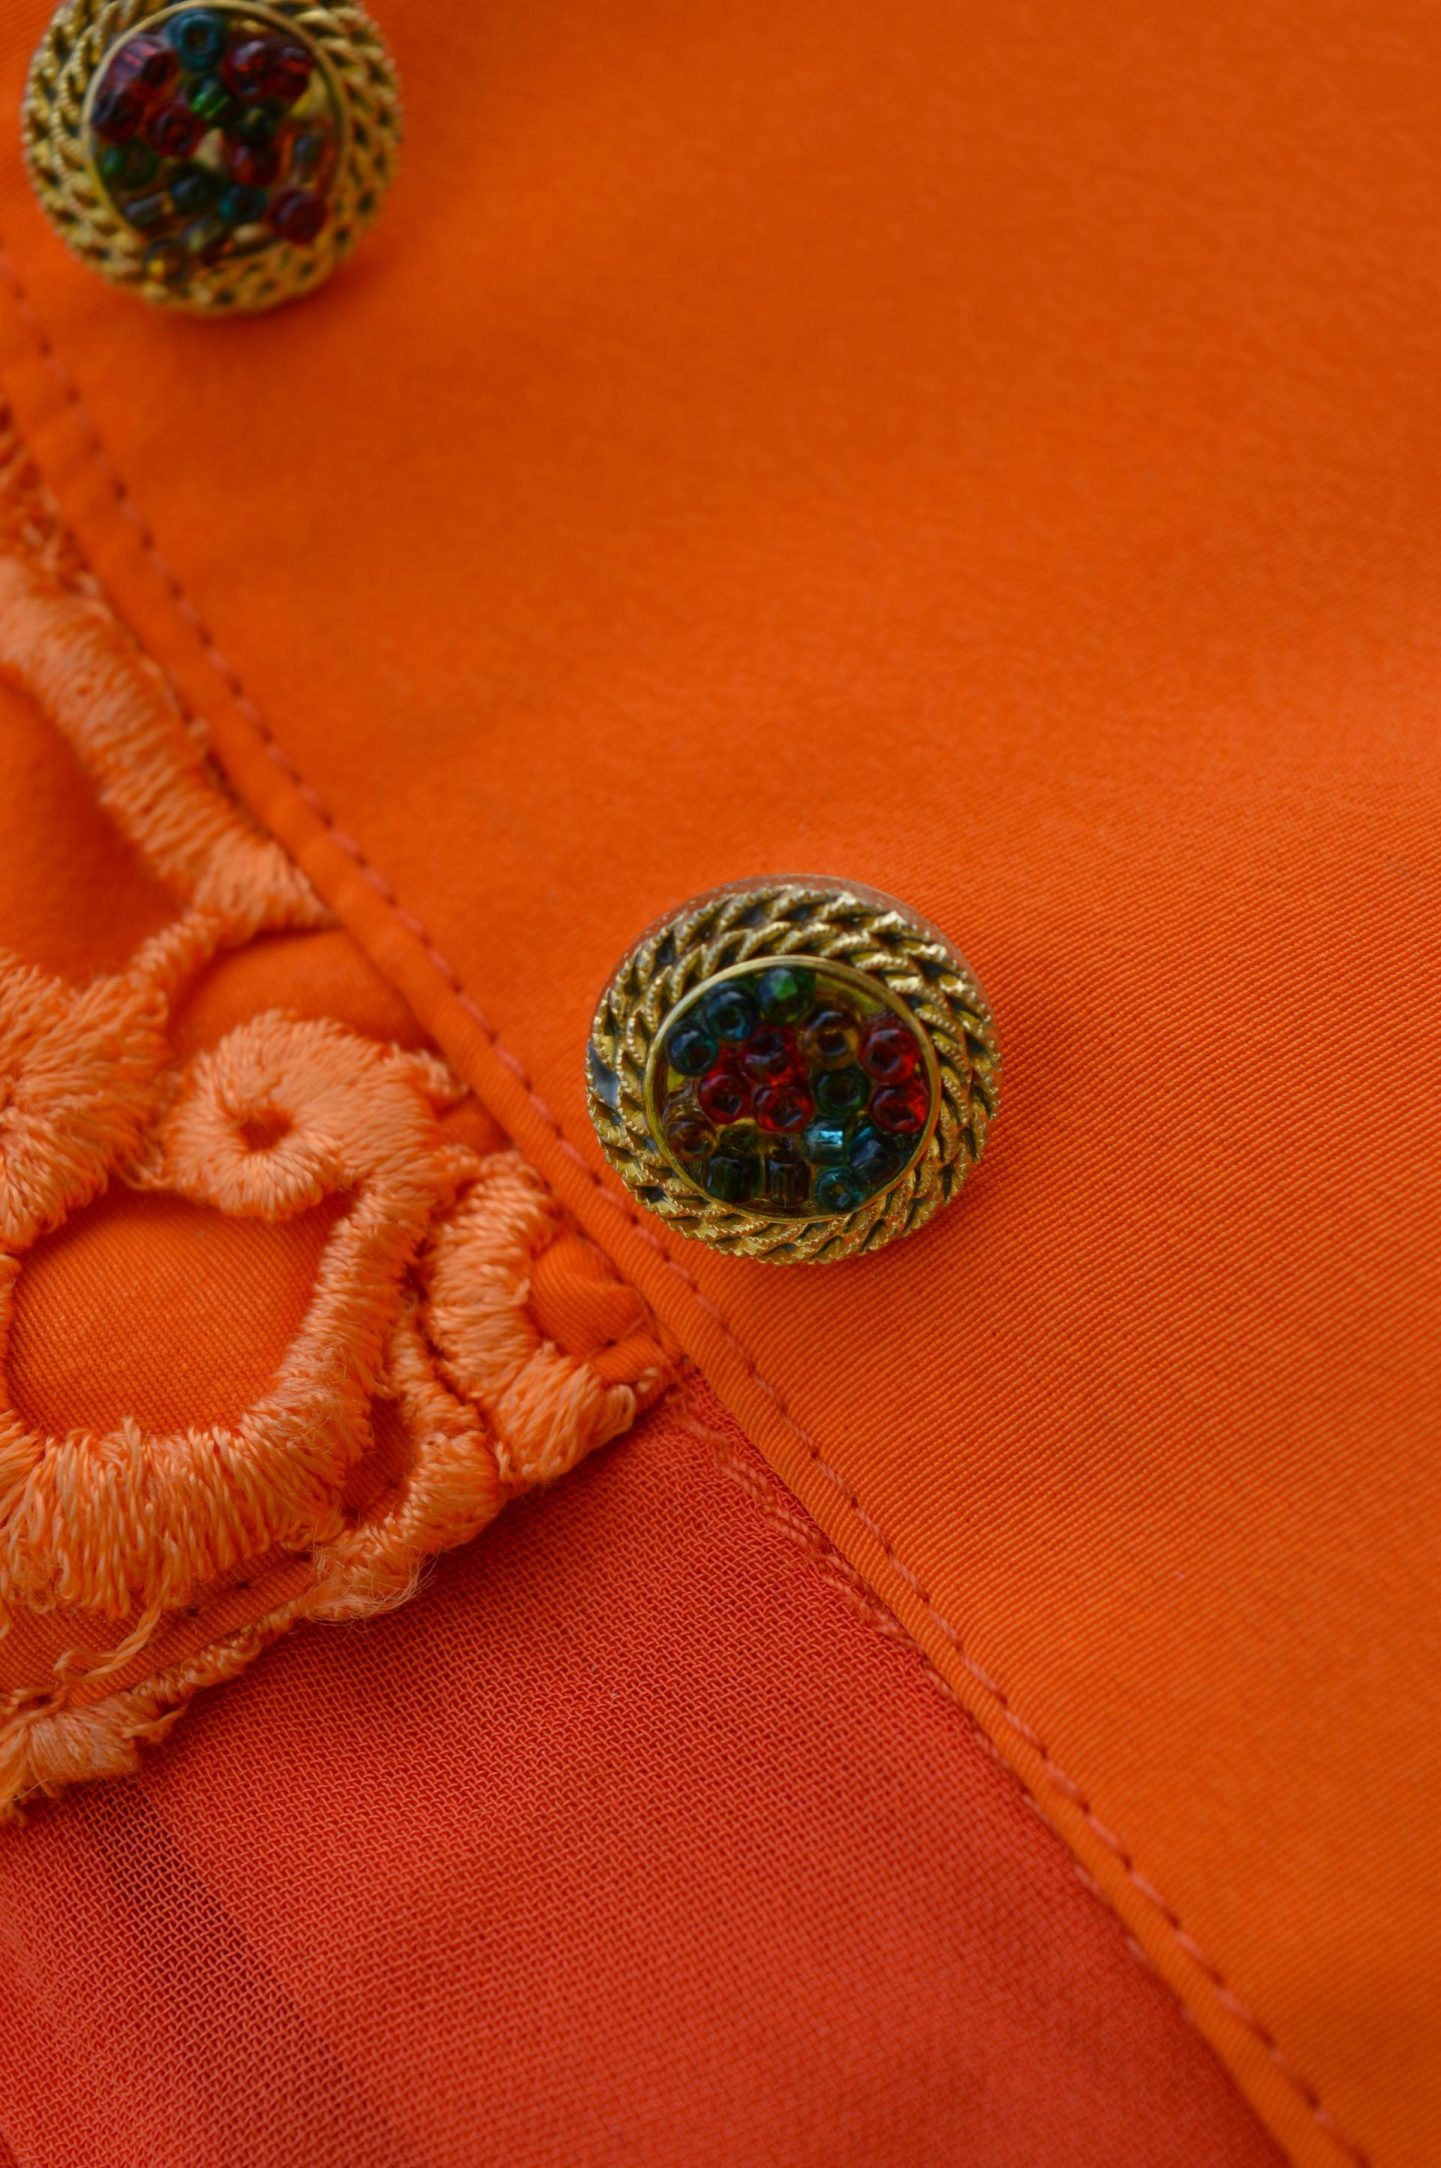 close up of beaded button